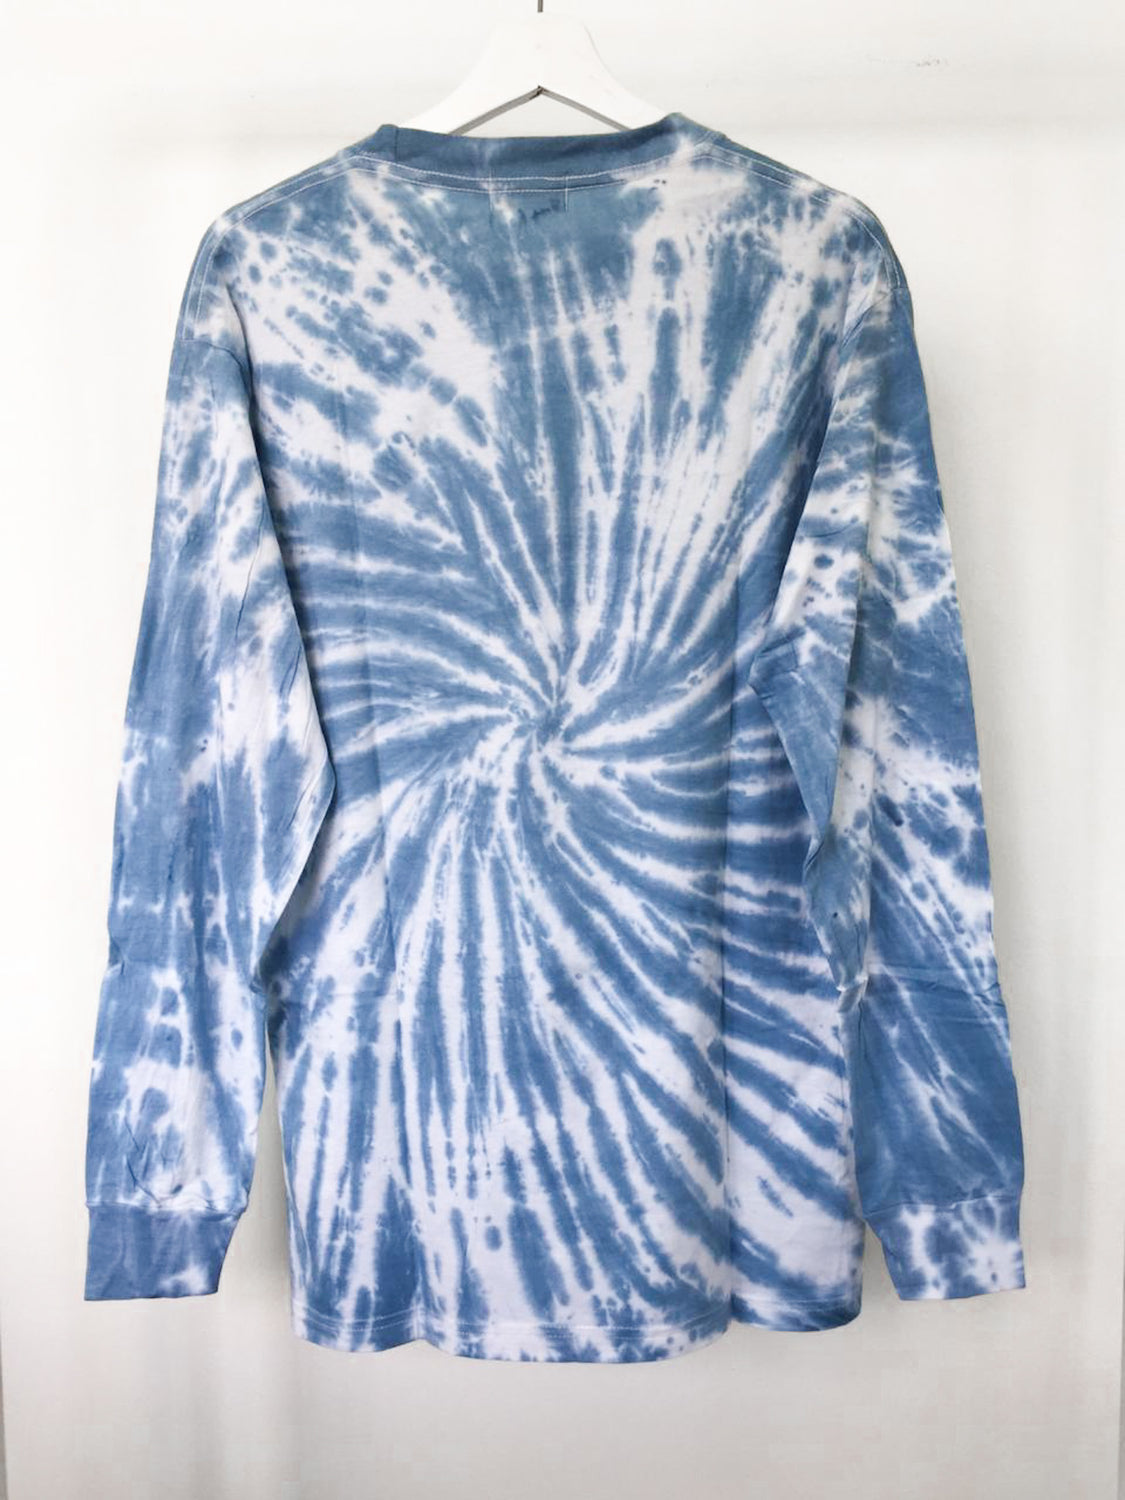 Organic Tie-Dye long sleeve